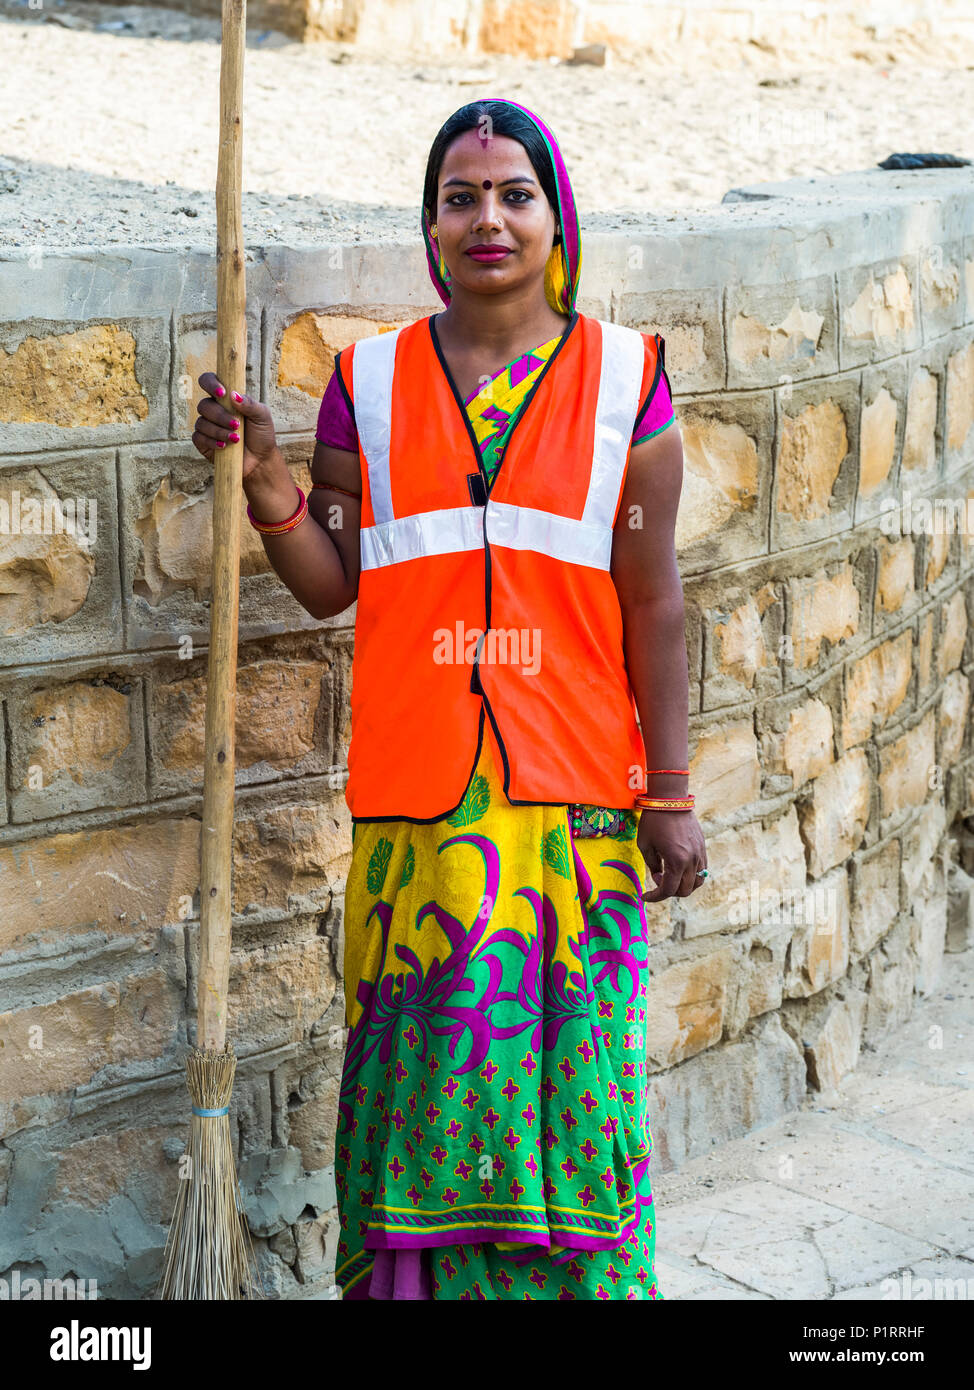 Portrait of an Indian woman wearing a reflective vest and holding a broom; Jaisalmer, Rajasthan, India - Stock Image